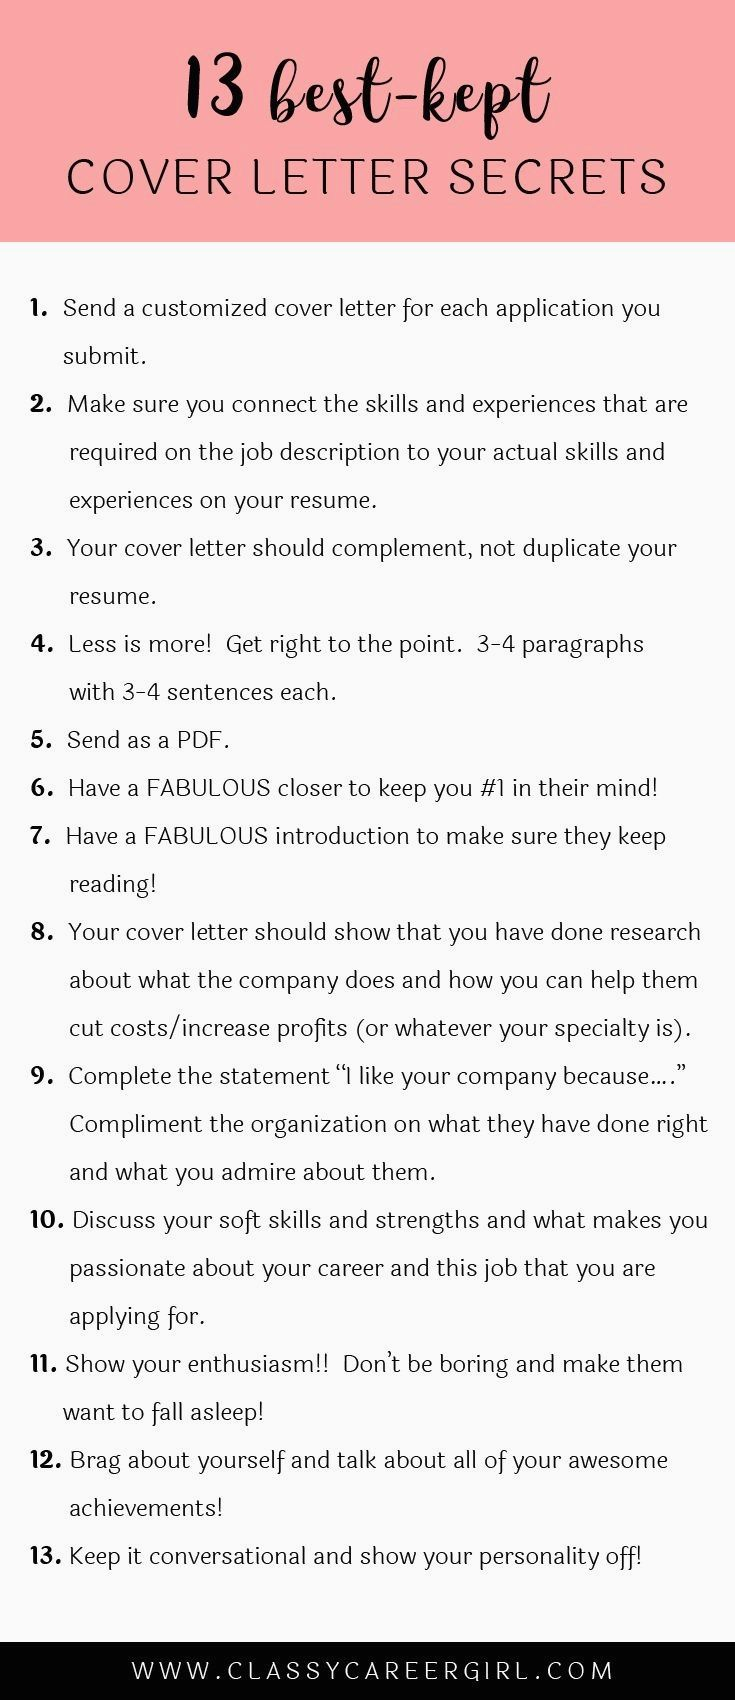 Think Cover Letters Dont Matter They Do Some Hiring Managers Only Want To See The Good Stuff Where You Really Brag About Yourself Here Is How